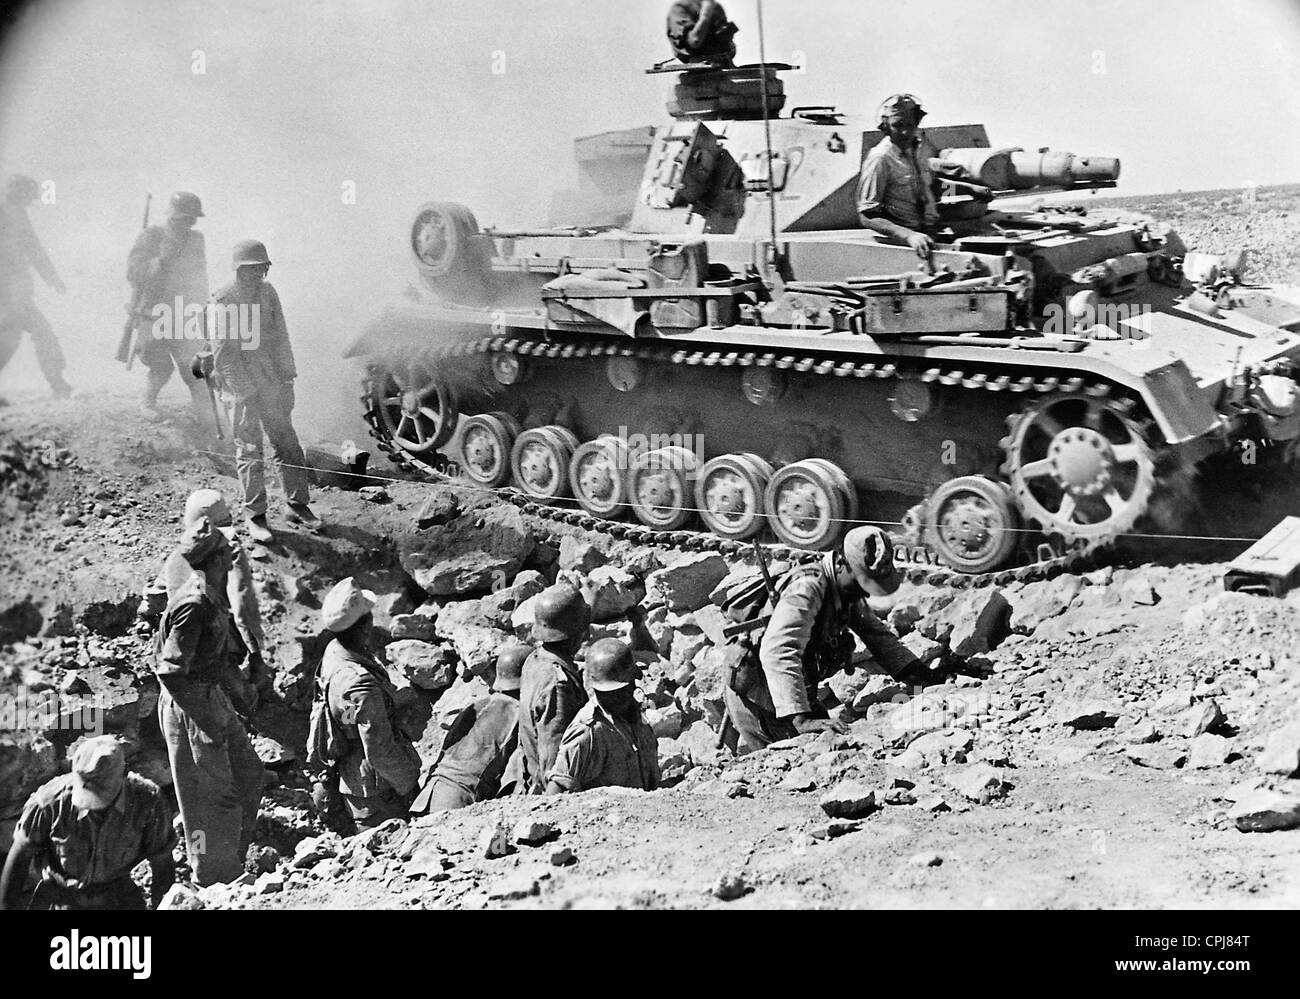 Veteran'-s Day: Remembering WWII Battles in North Africa